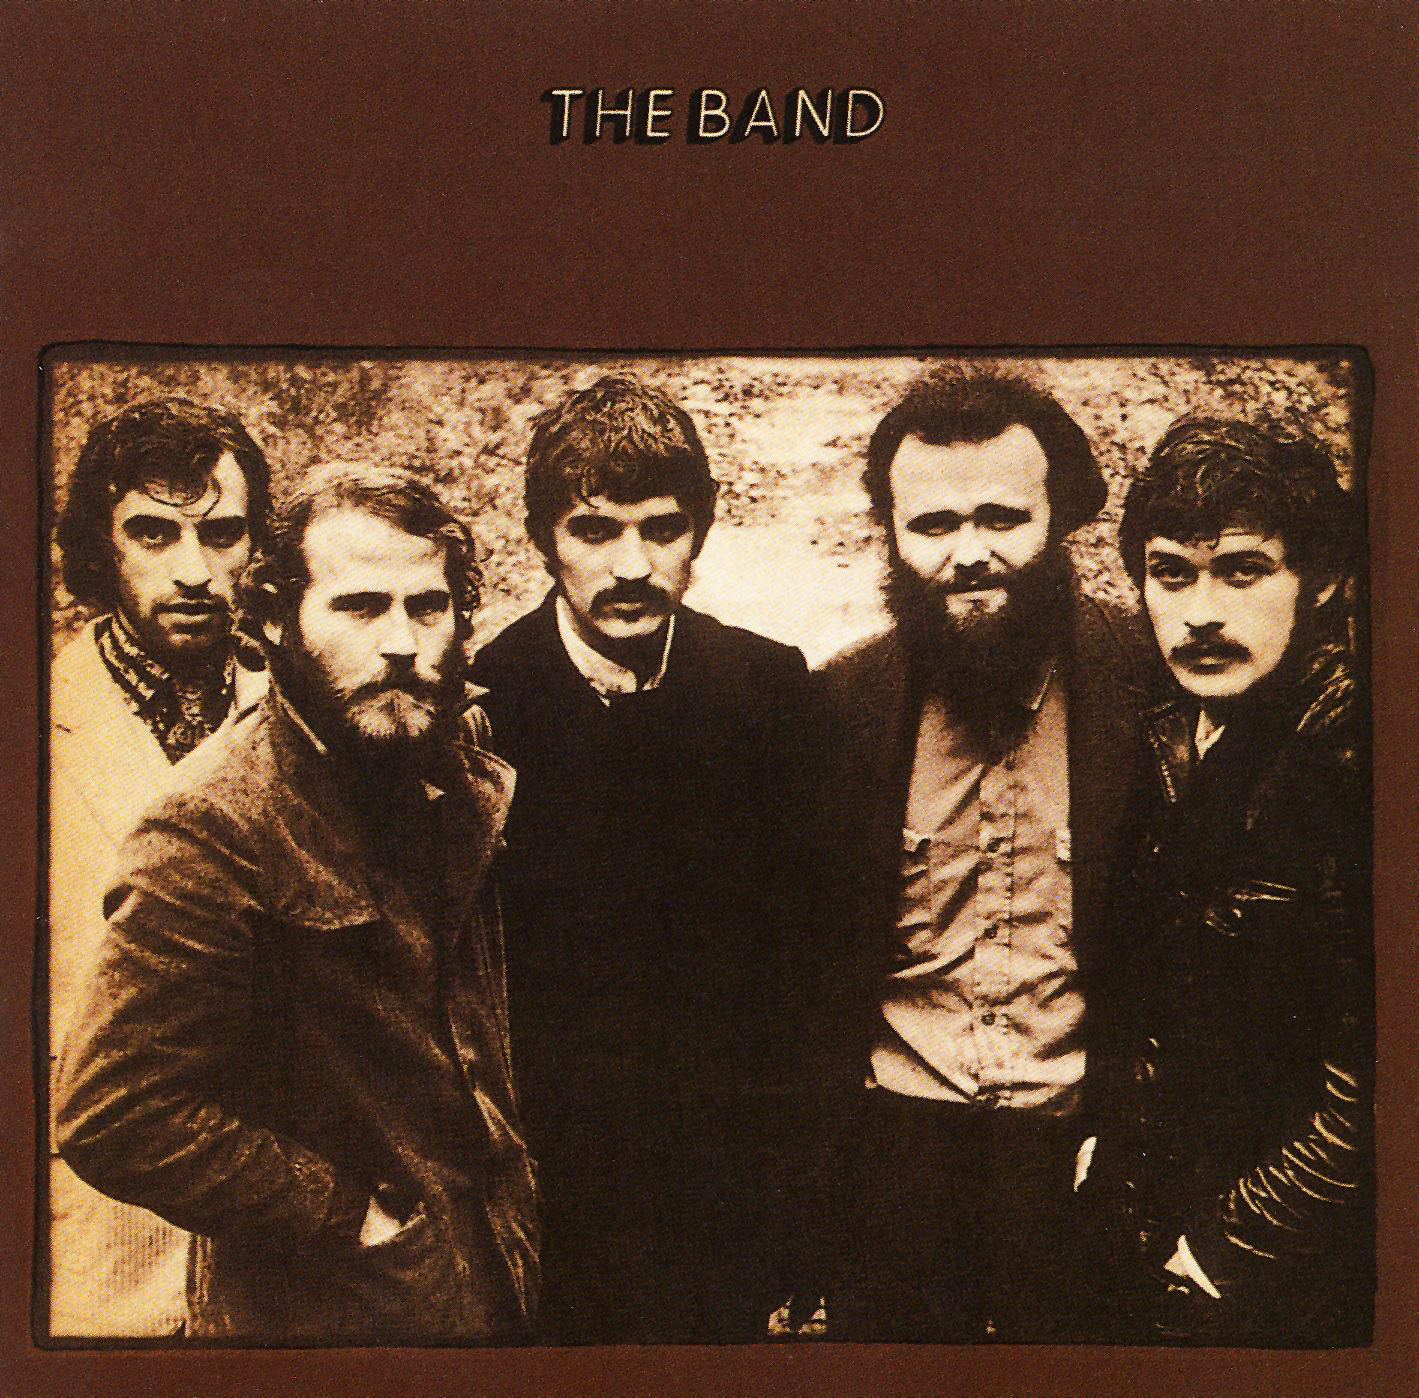 The Band - The Band - cover art